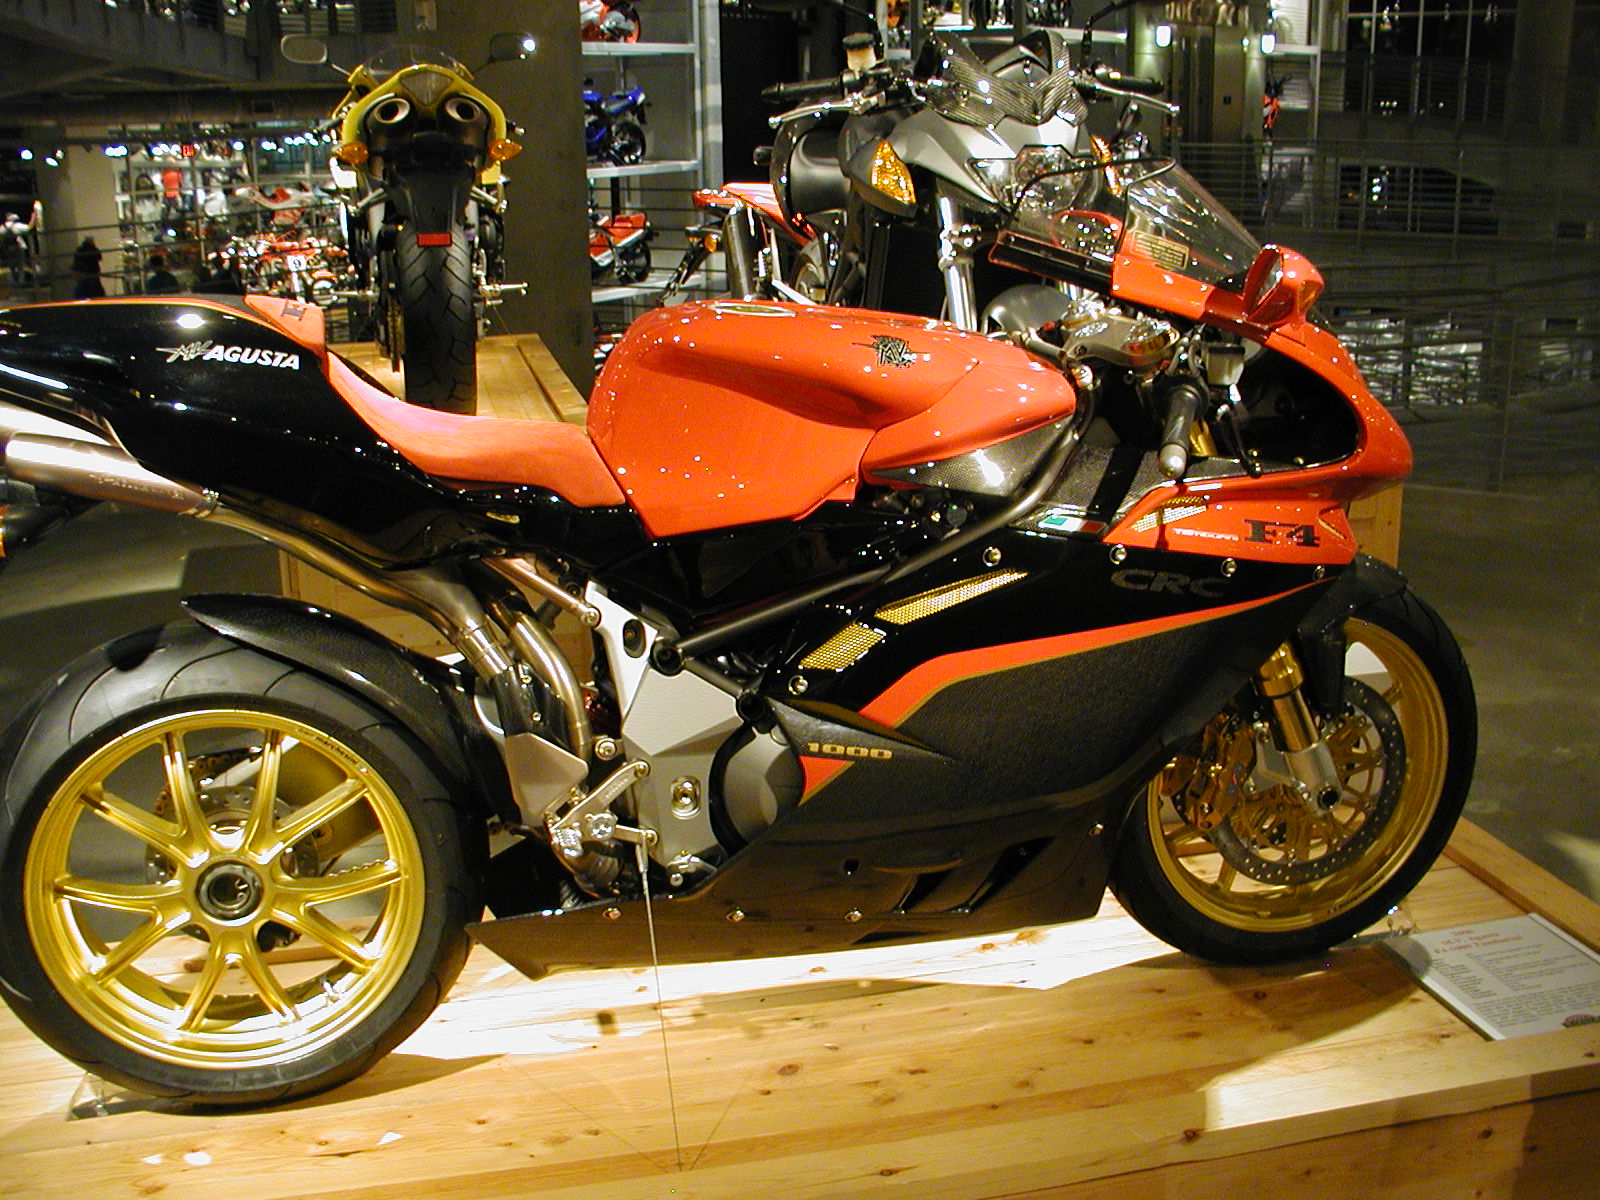 Mv agusta f4cc photo - 1